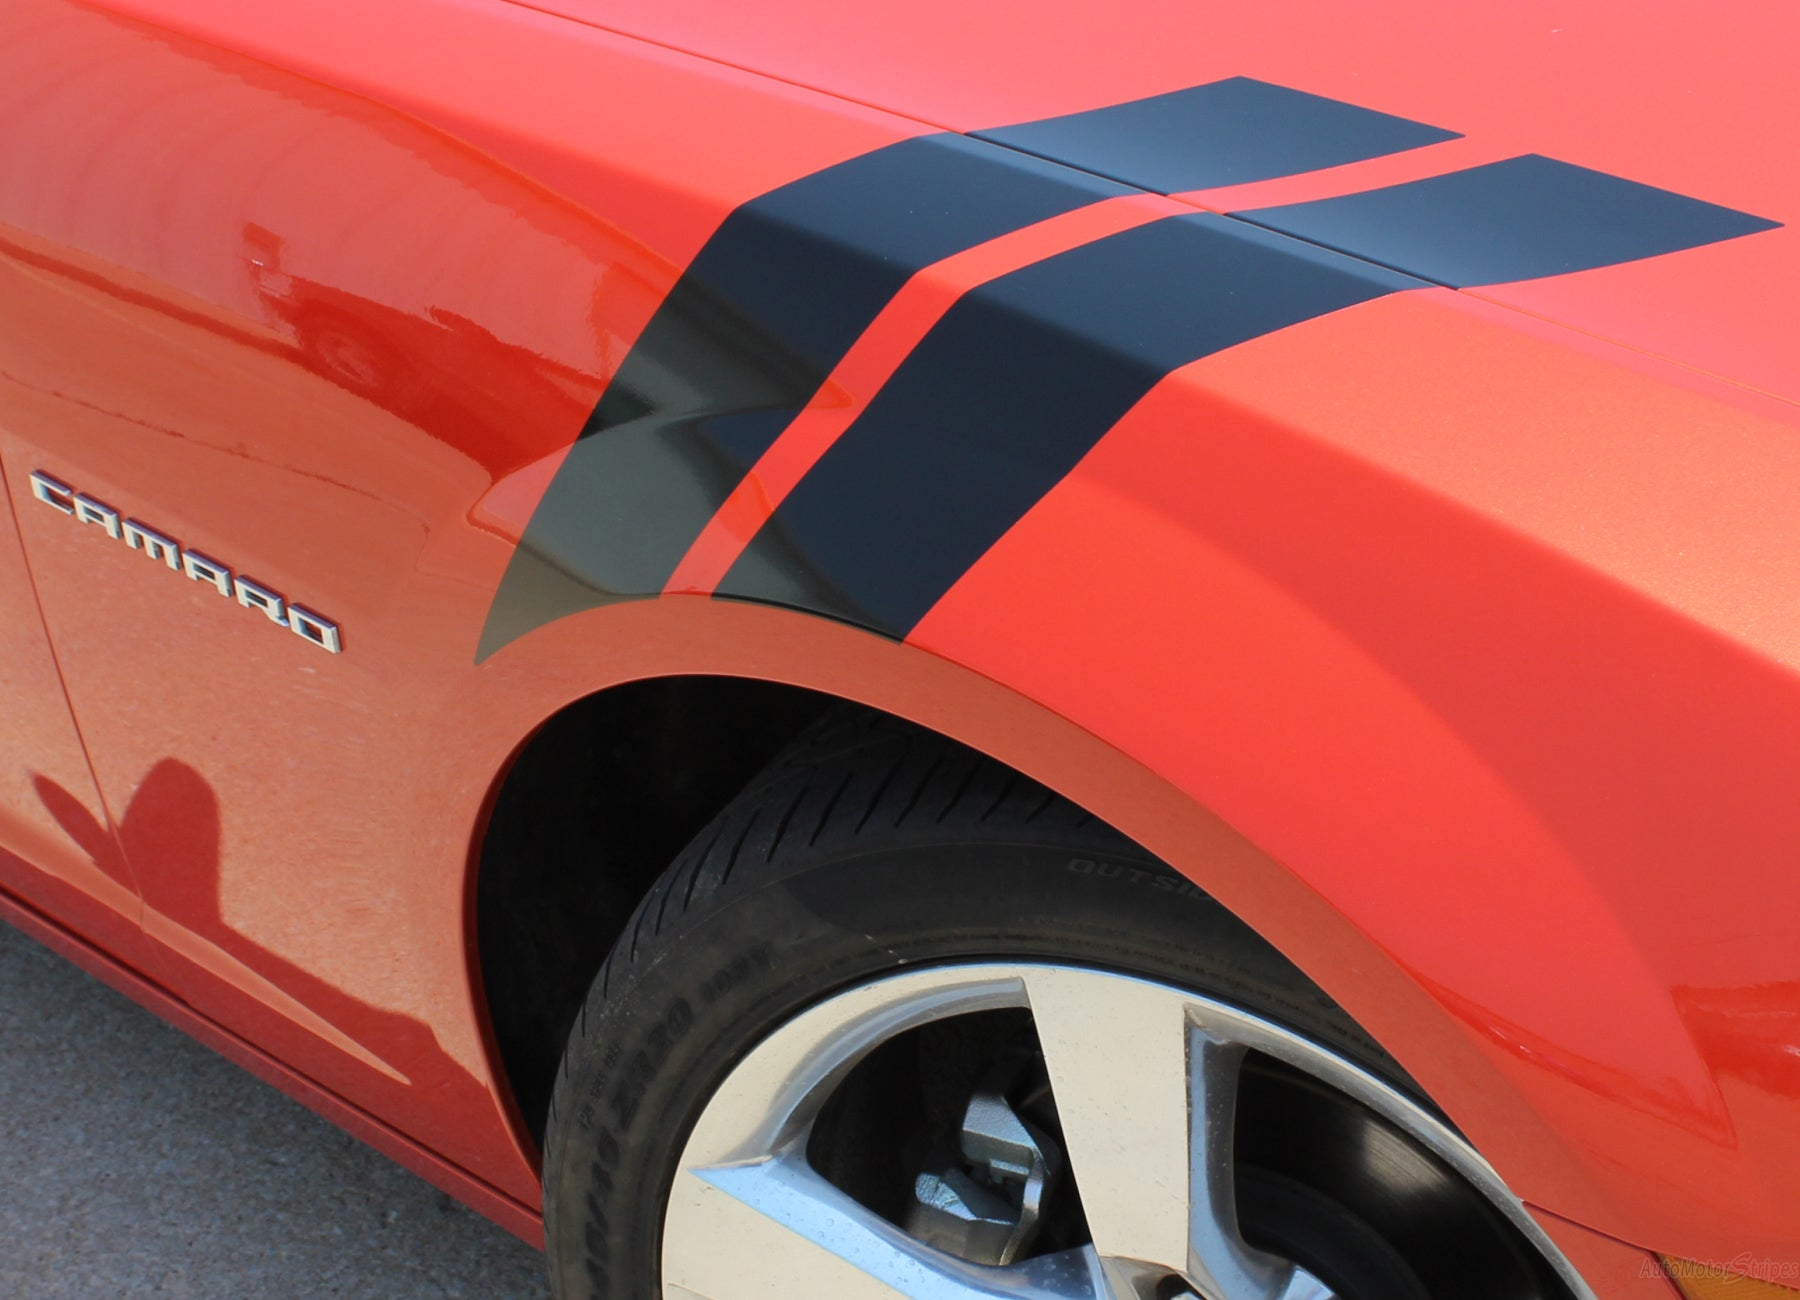 FORD MUSTANG FENDER HASH STRIPES SMALL STYLE VINYL GRAPHICS DECAL 2012 2013